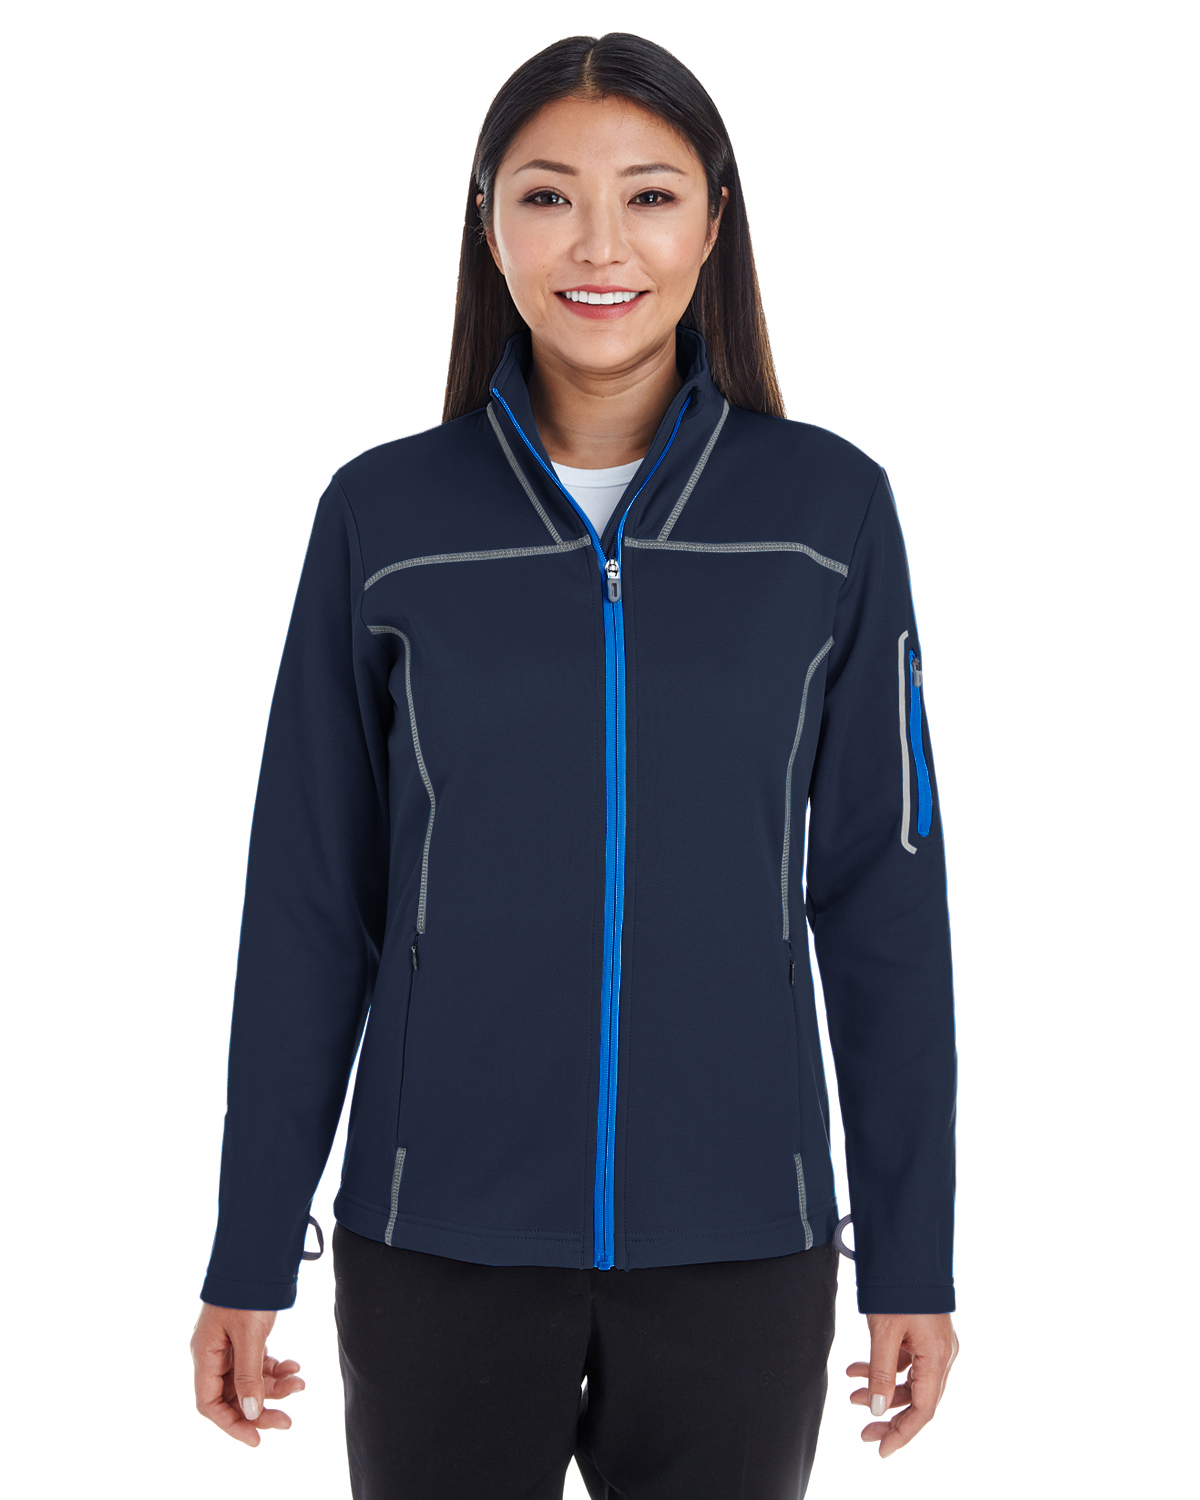 Ash City - North End NE703W - Ladies' Endeavor Interactive Performance Fleece Jacket